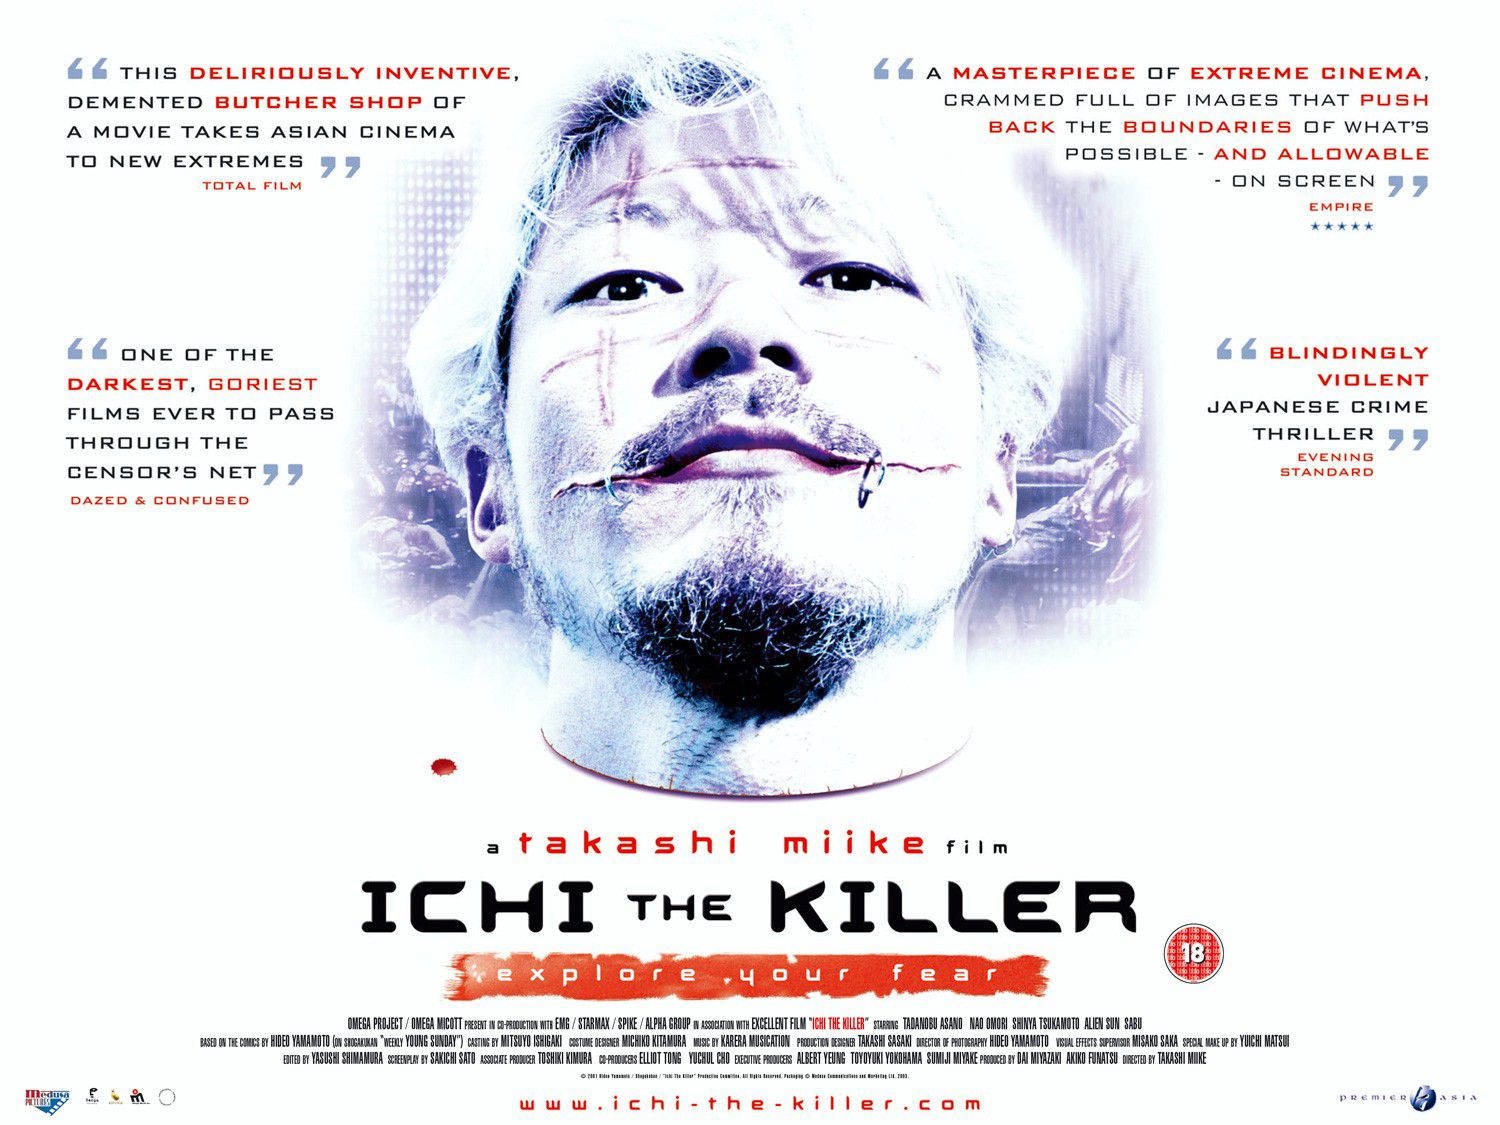 Ichi the Killer - Koroshiya one - film killer poster